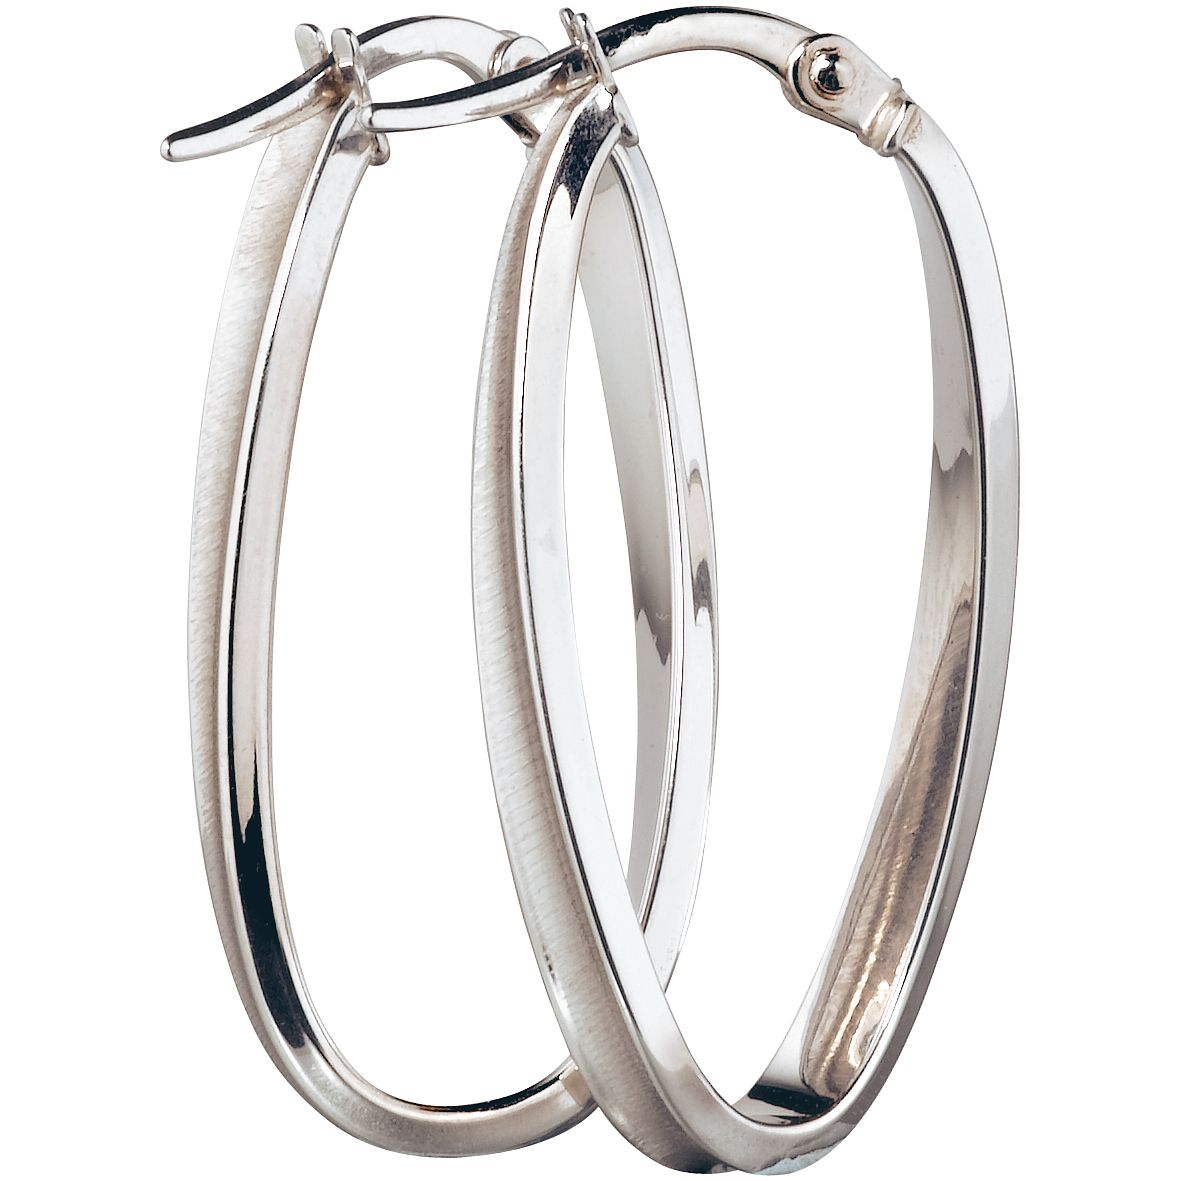 9ct White Gold Oval Twist 26X12mm Hoop Earrings - Product number 5141702